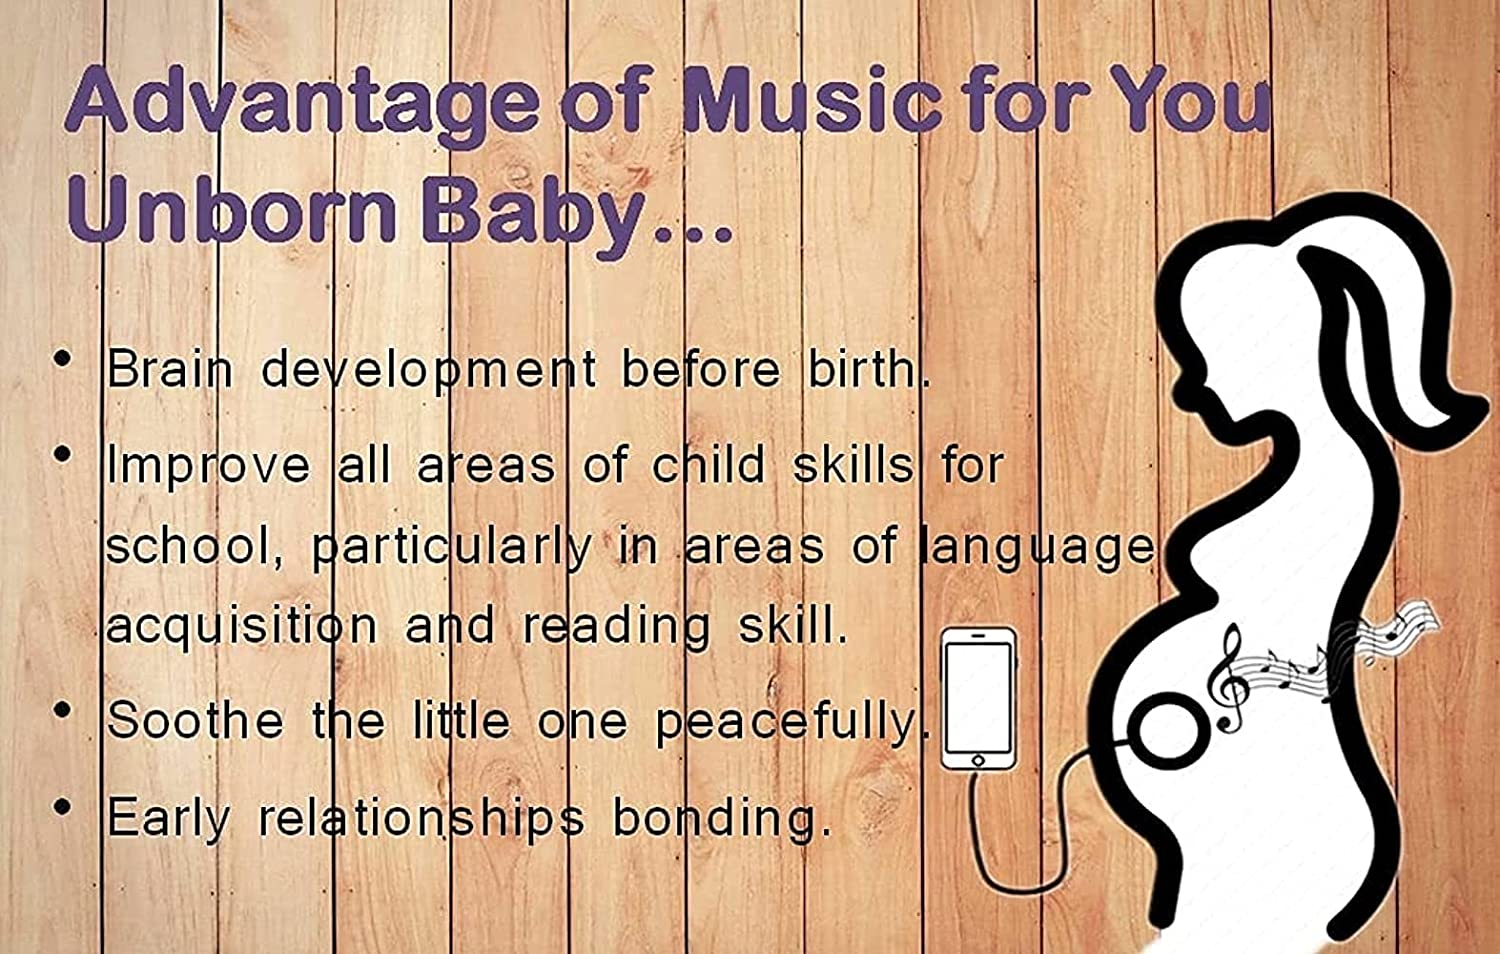 Beauty HAO Pregnancy Headphones for Belly, Baby Bump Headphones Speaker, Plays Music to Baby Inside The Womb, Perfect Baby Shower Pregnancy Gifts